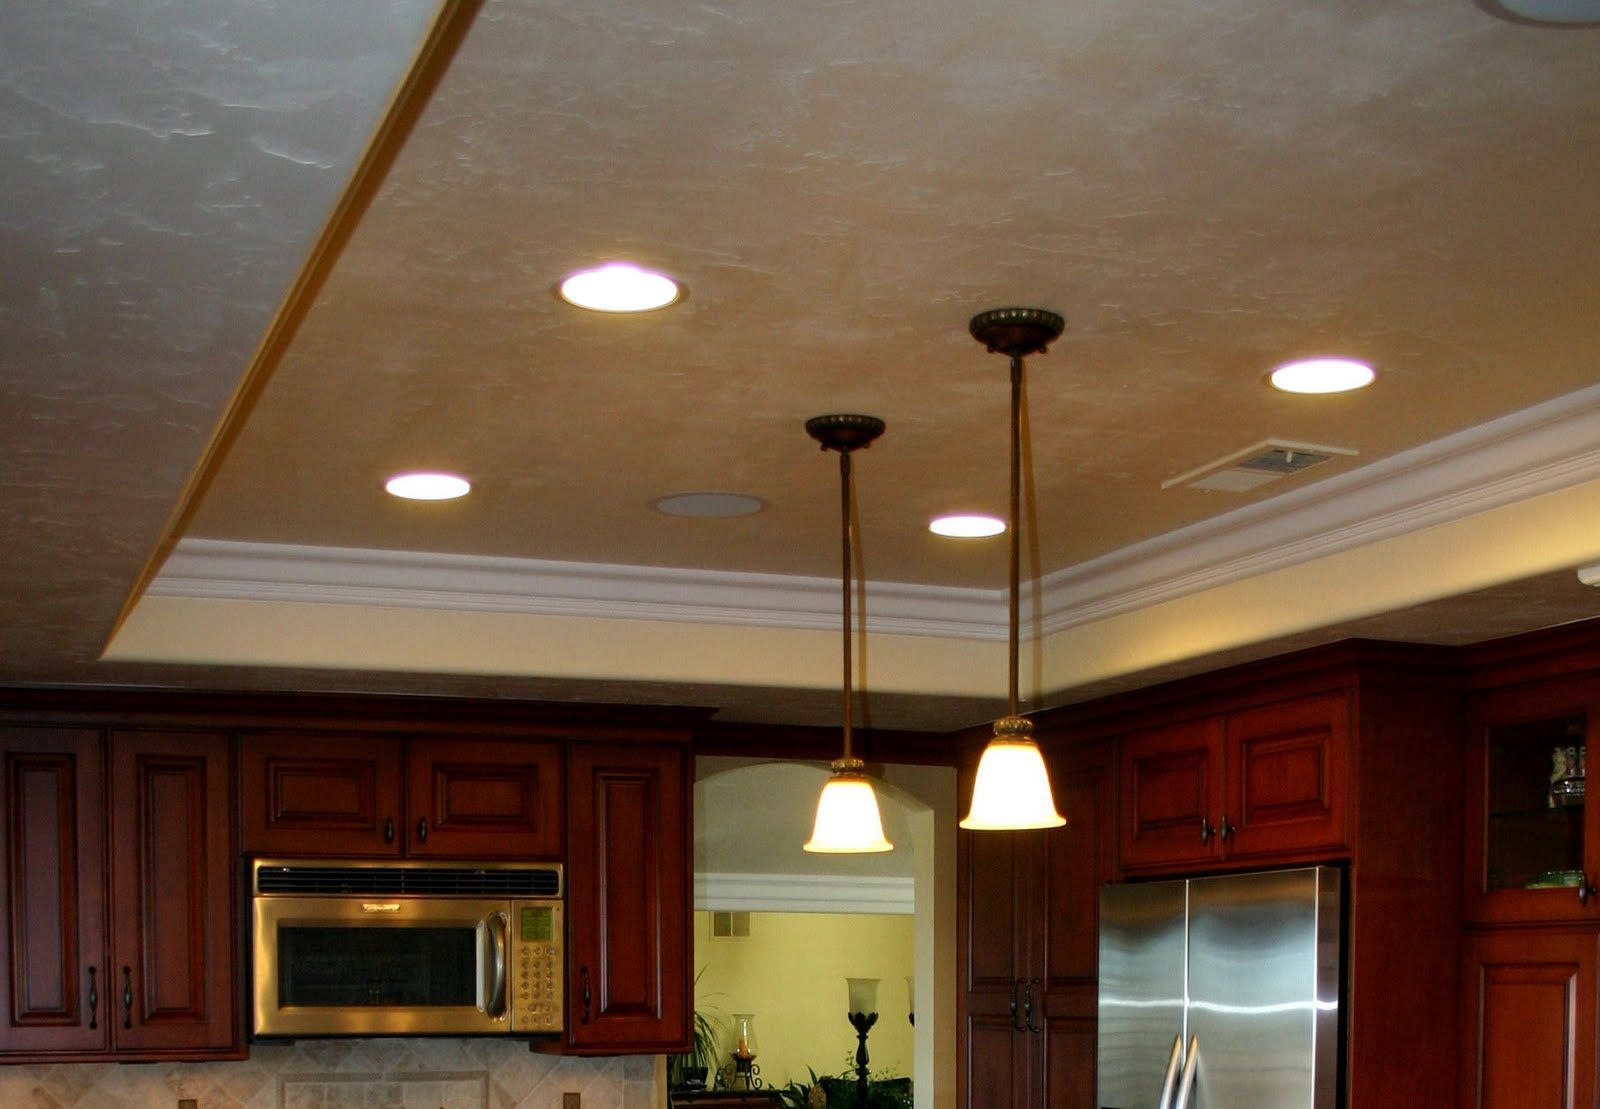 Replace Ceiling Light With Downlight